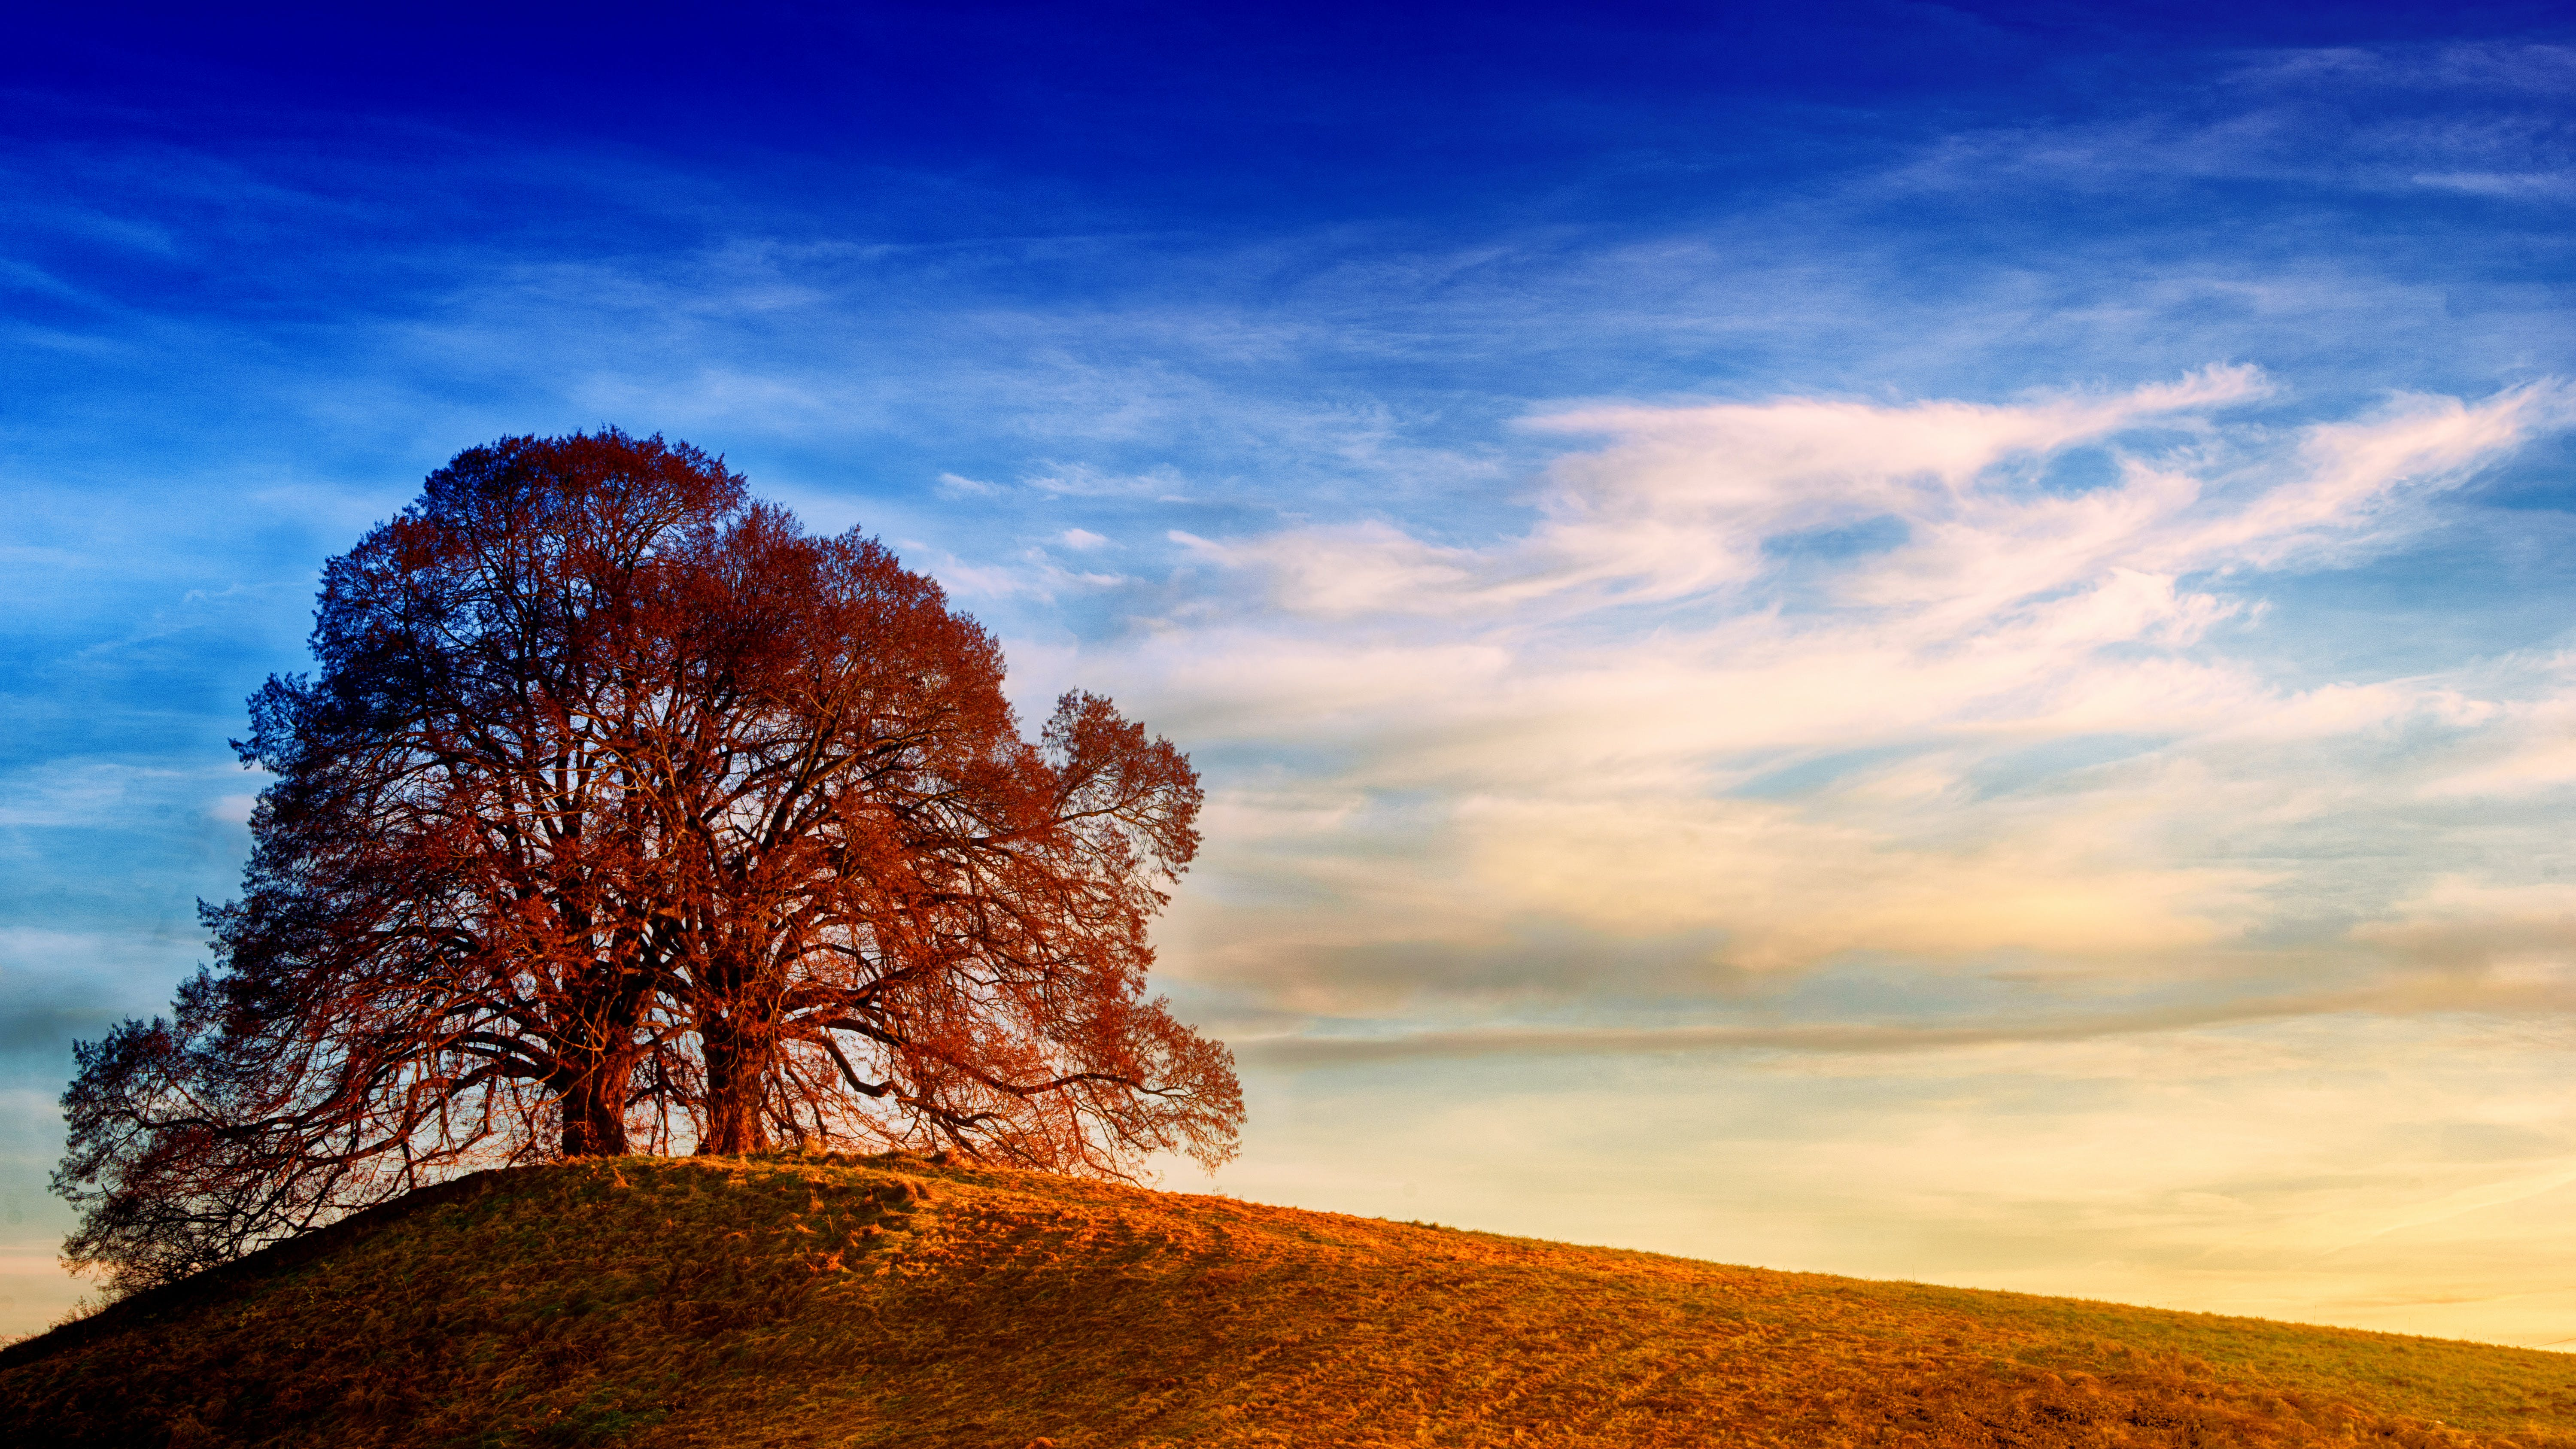 Tree on Top of Hill Under Blue Sky